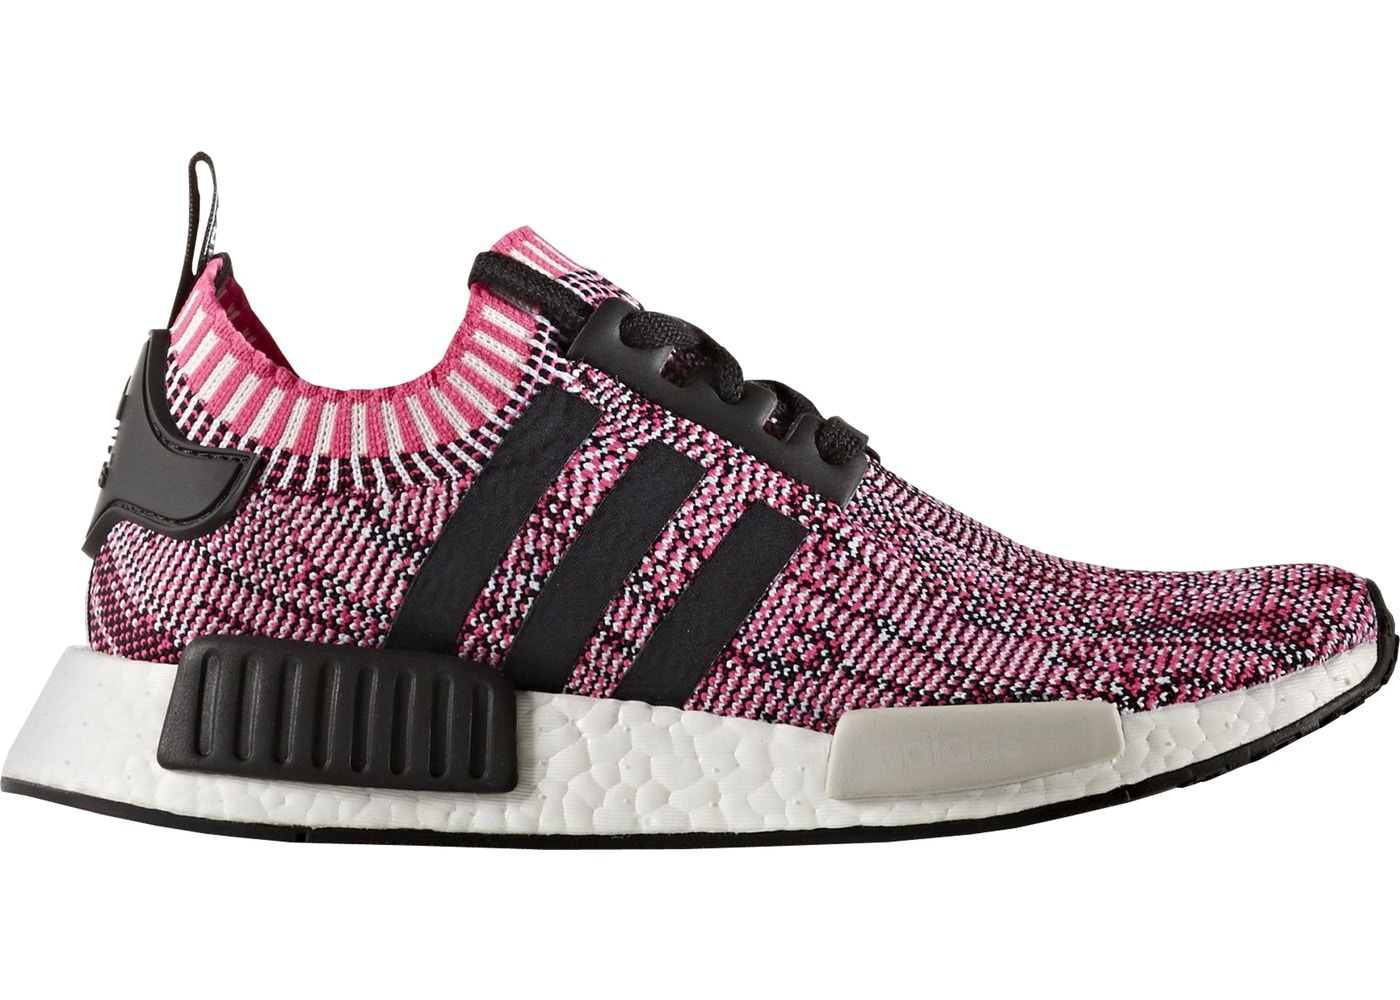 3e6a151b6 adidas NMD Shoes - Lowest Ask